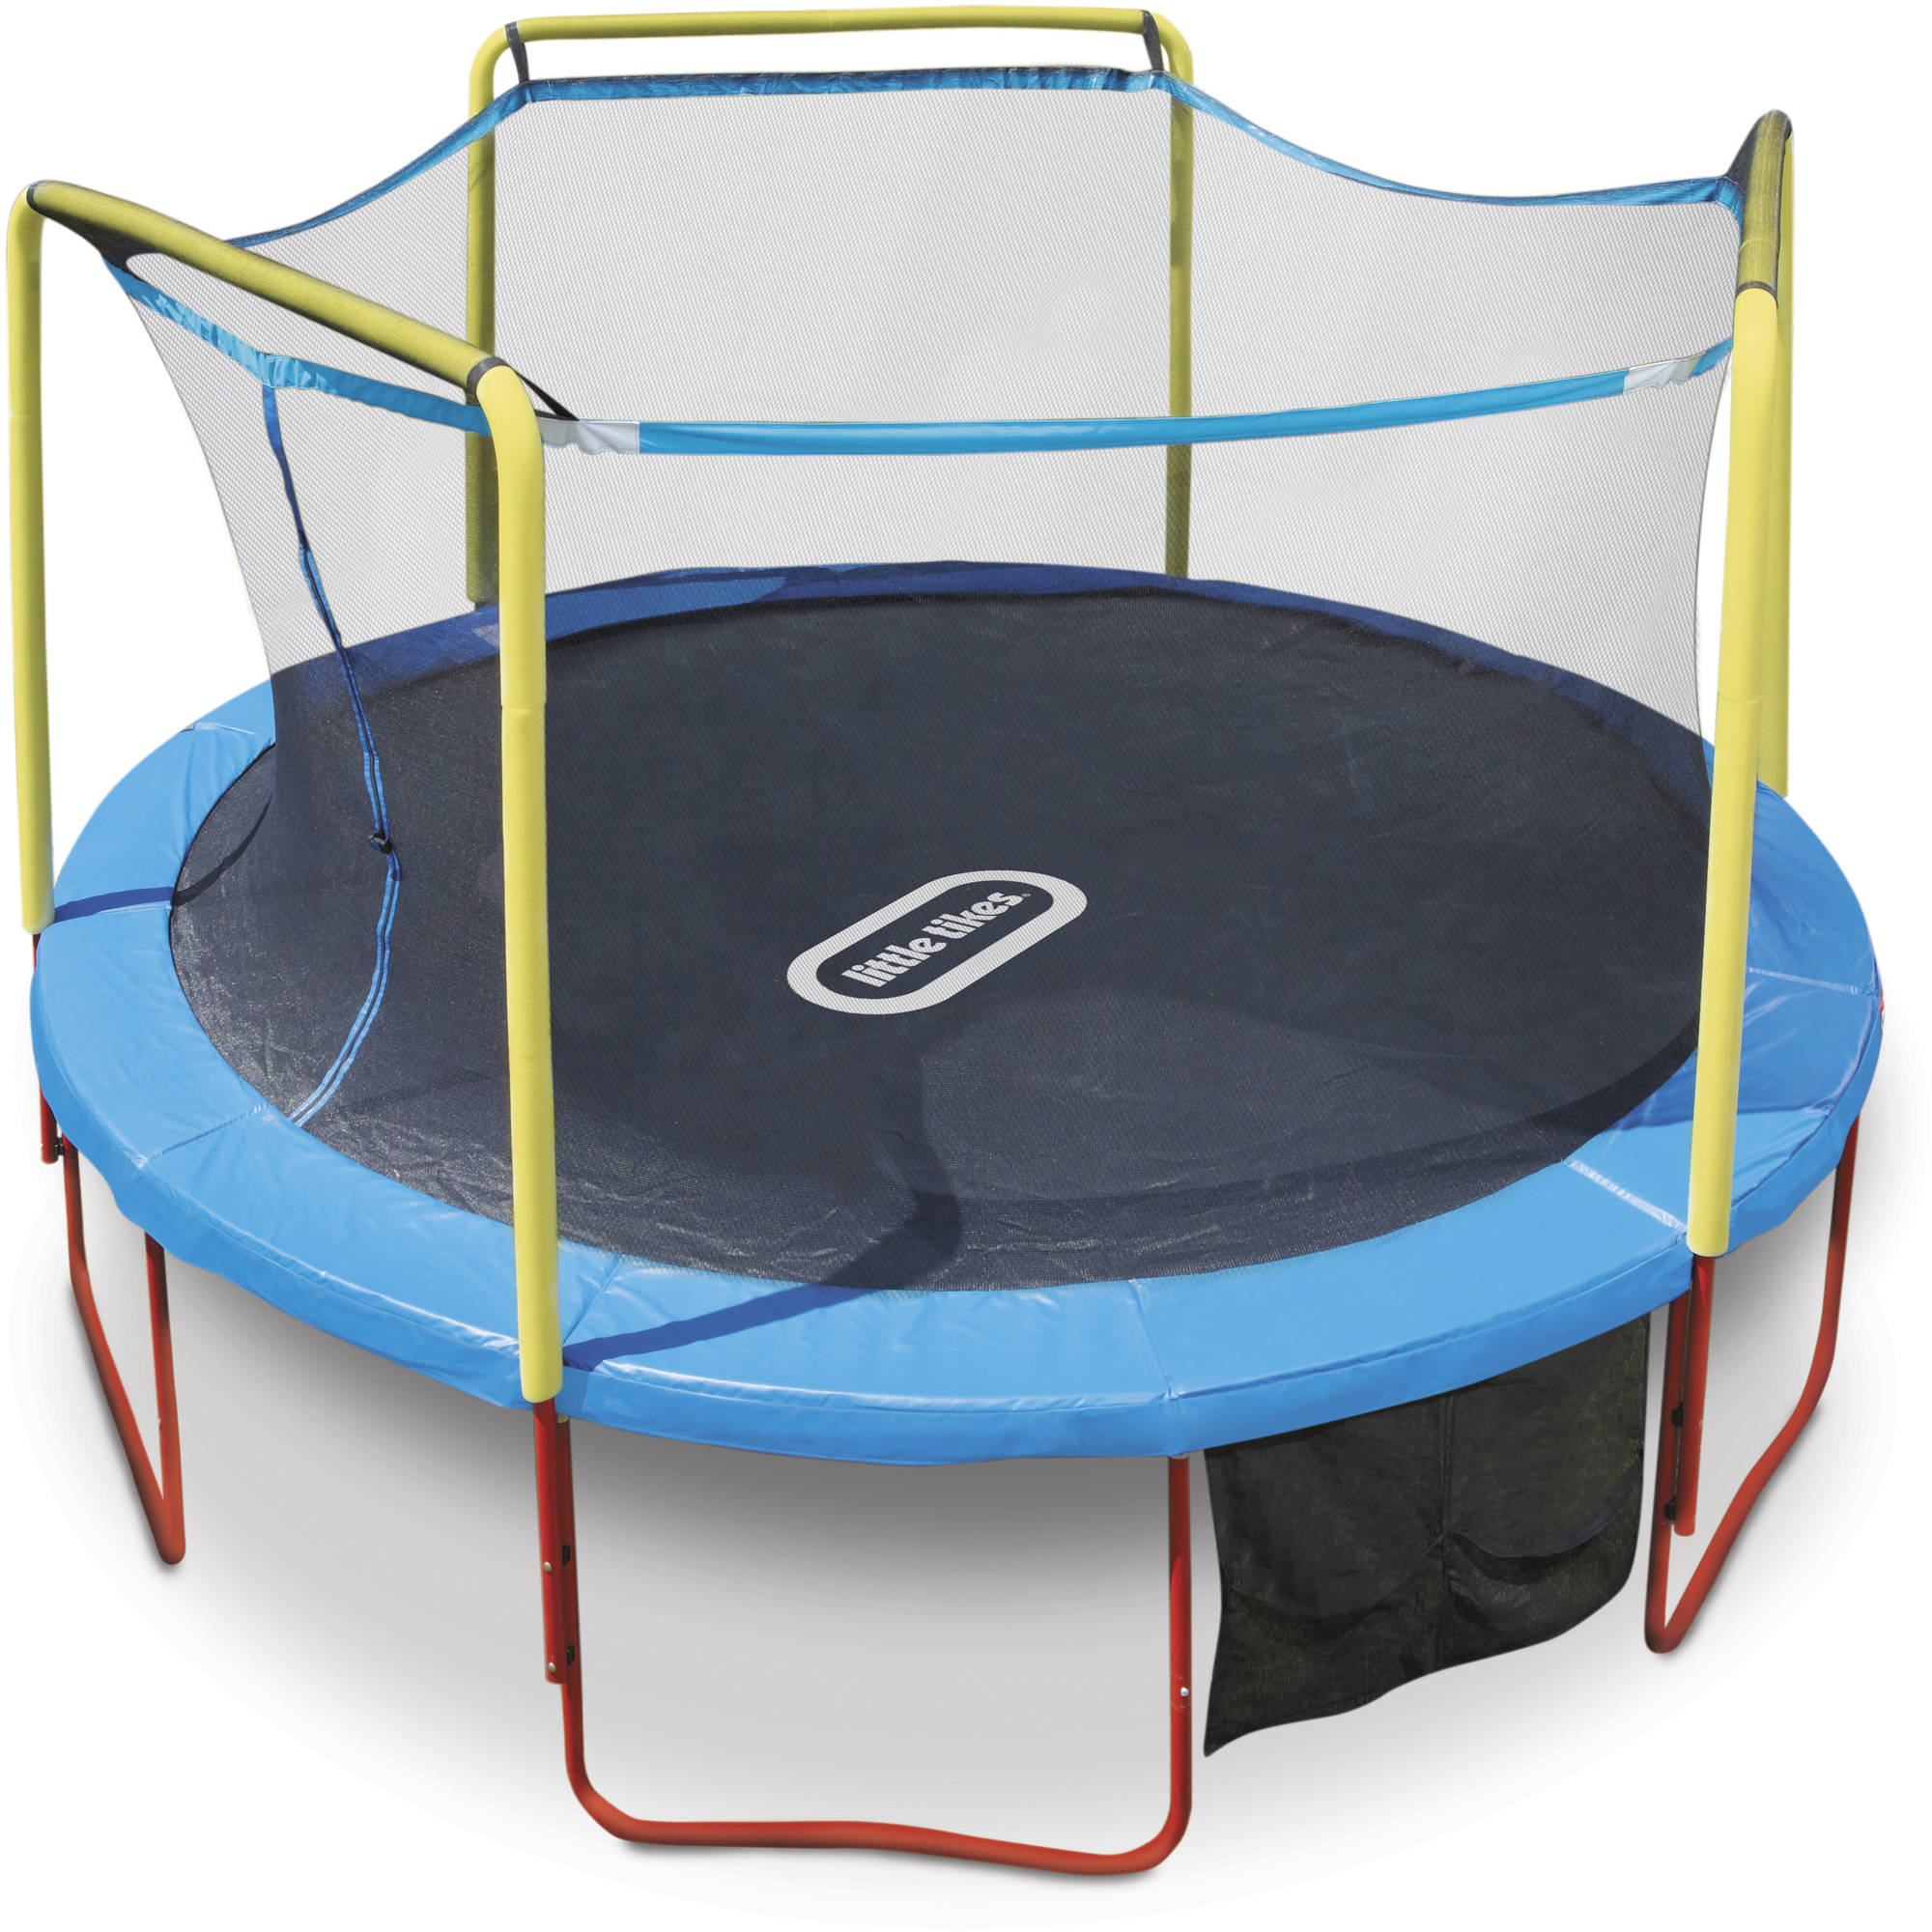 Little Tikes Huge Bounce 14-Foot Trampoline, with Safety Enclosure, Blue/Yellow/Red